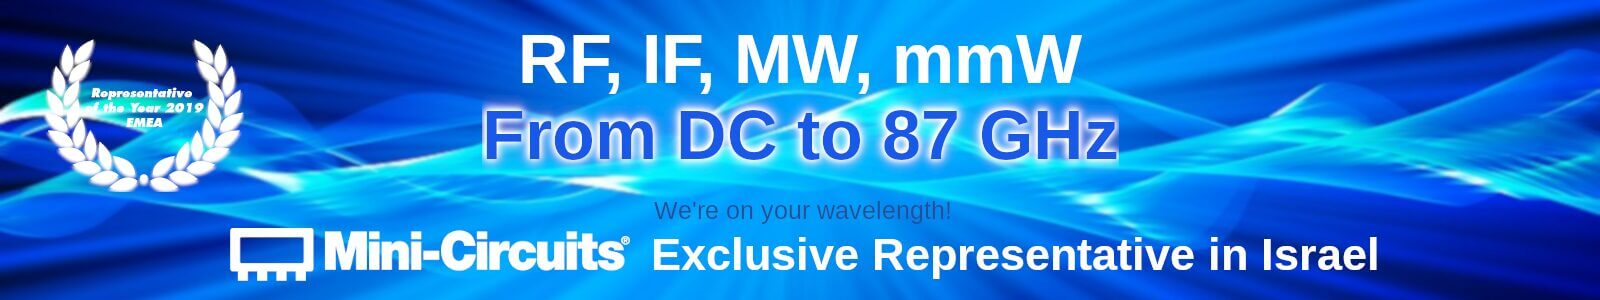 MCDI is Mini-Circuits Exclusive Representative is Israel. RF, IF, MW, mmW from DC to 87 GHz.